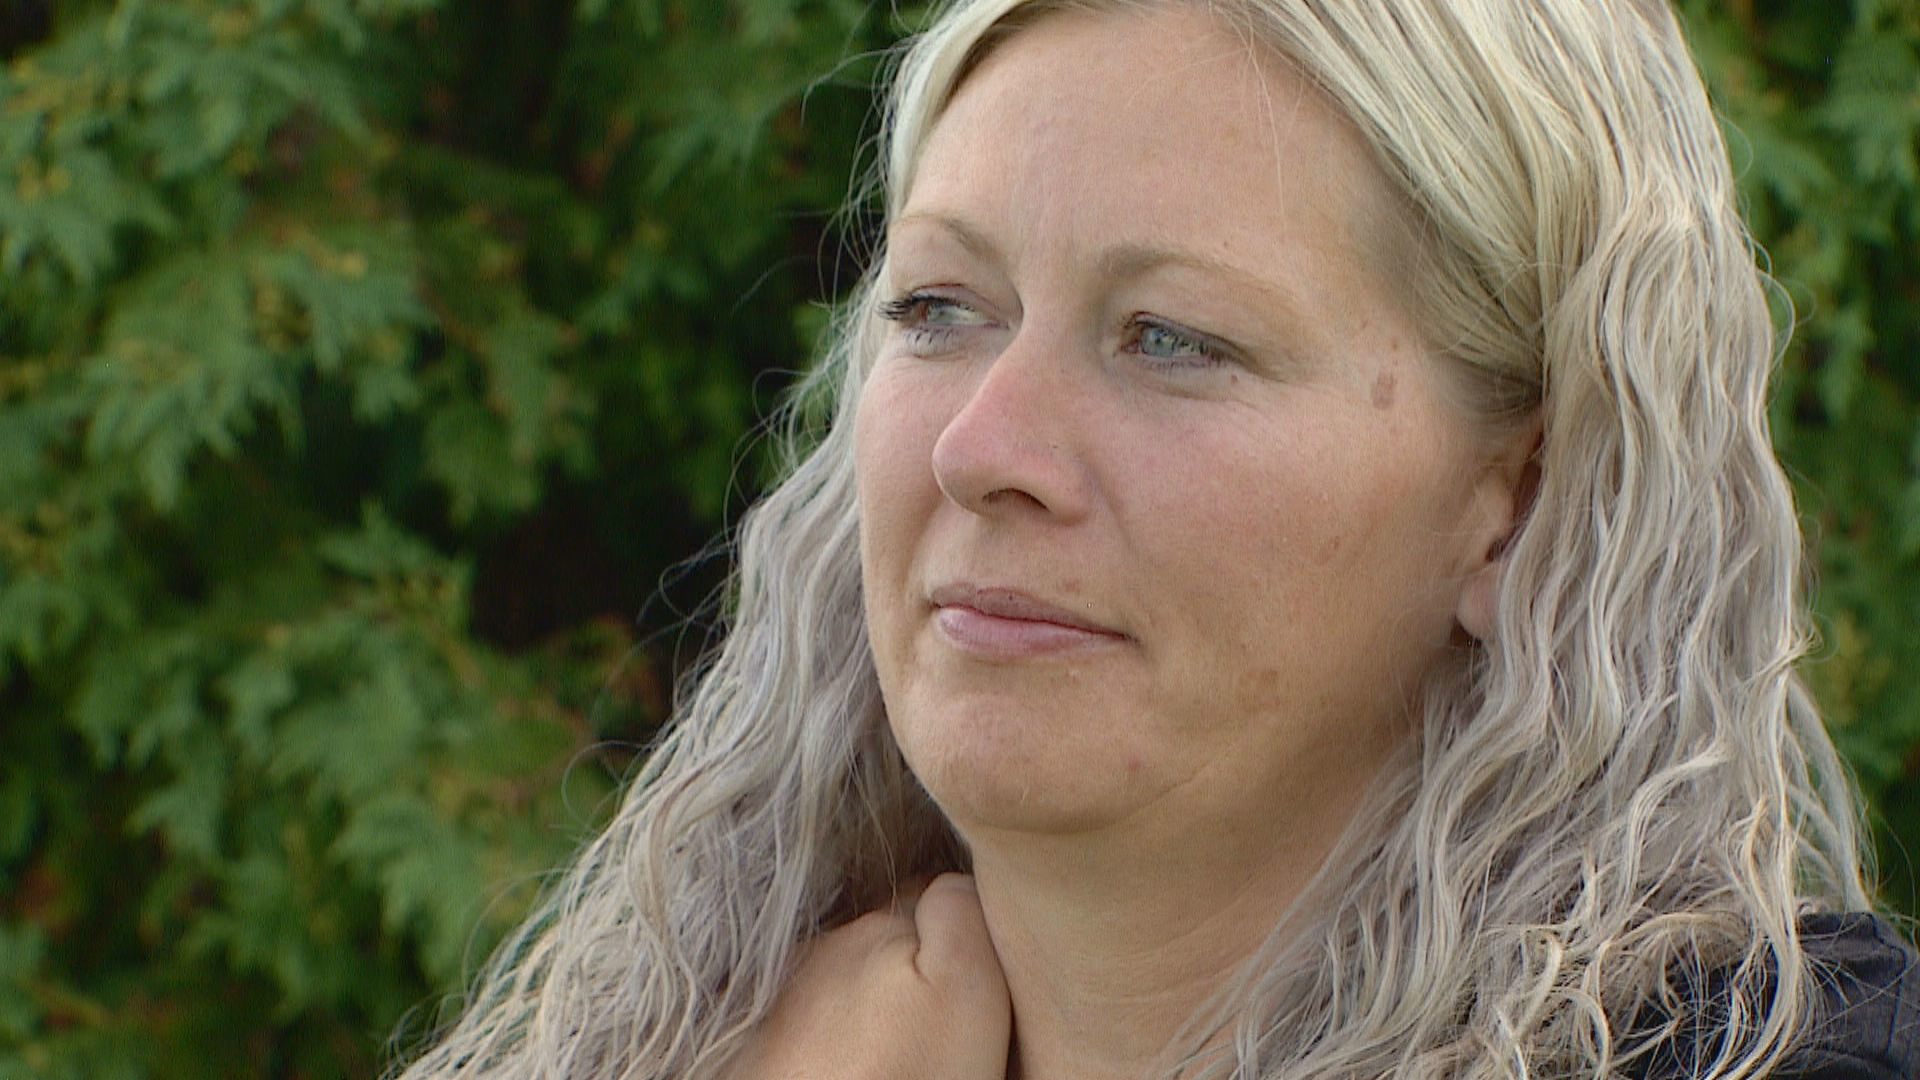 Lindsay Niwa tears up when speaking about her brother, Brandon, who died on May 29, 2020. (Monty Kruger/CBC)